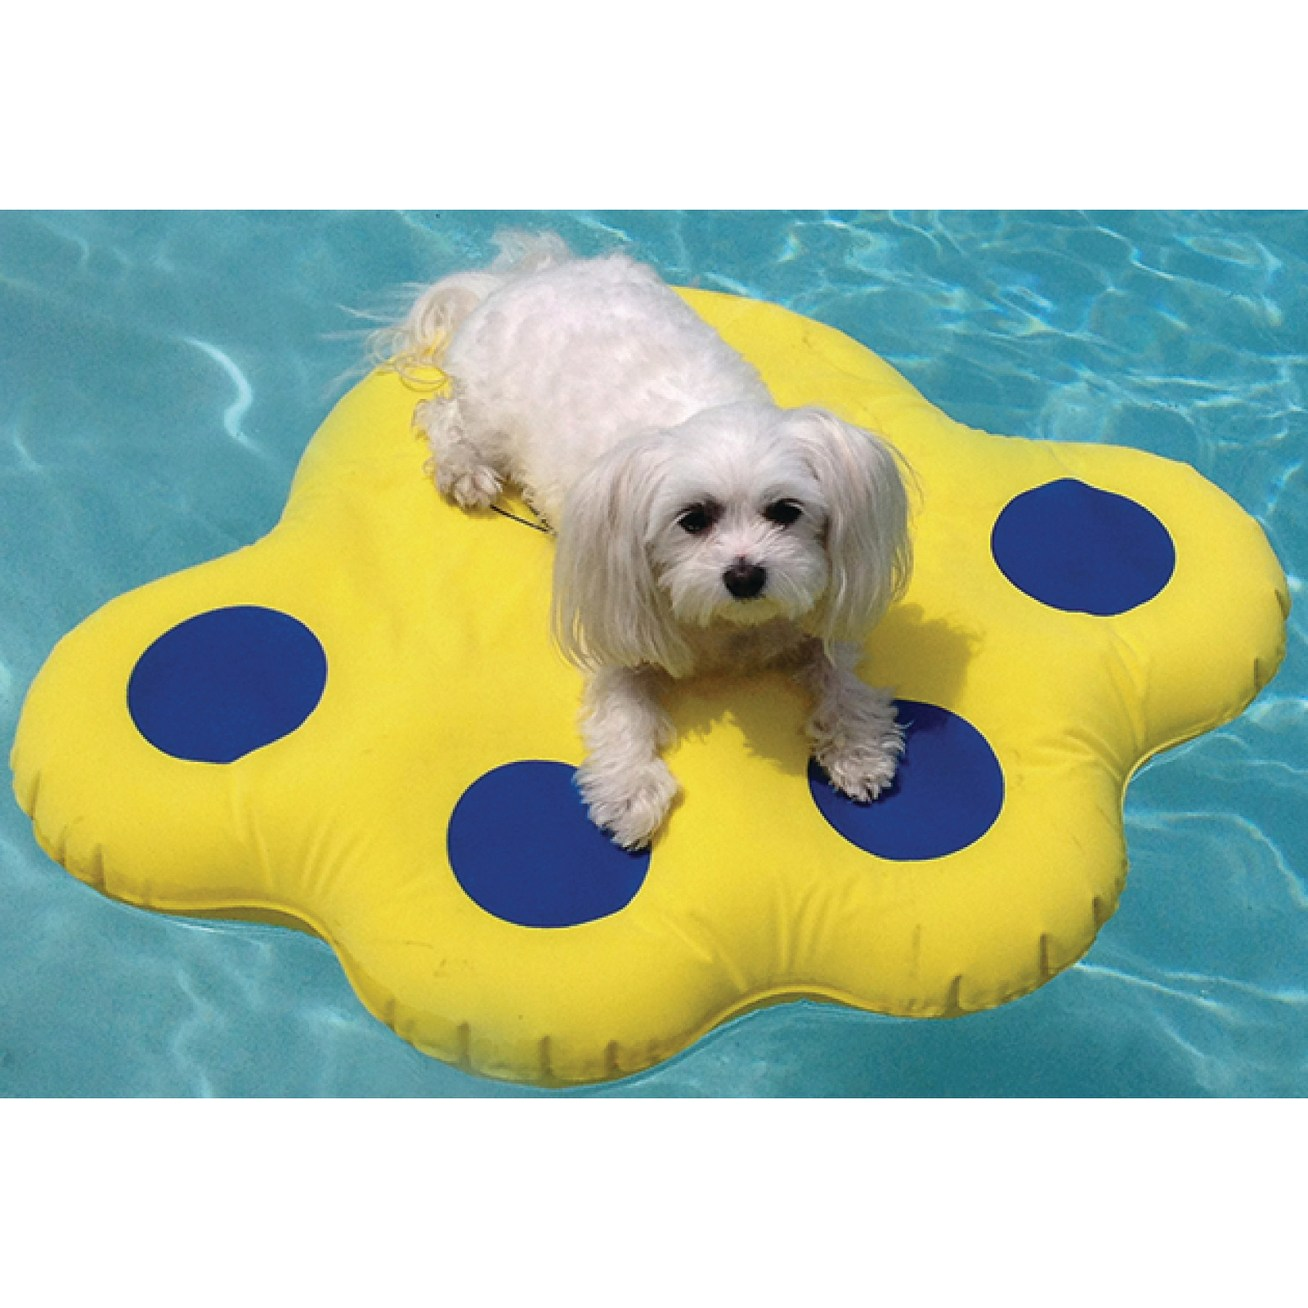 What I said up there ^ about a dog life jacket!Price: .39